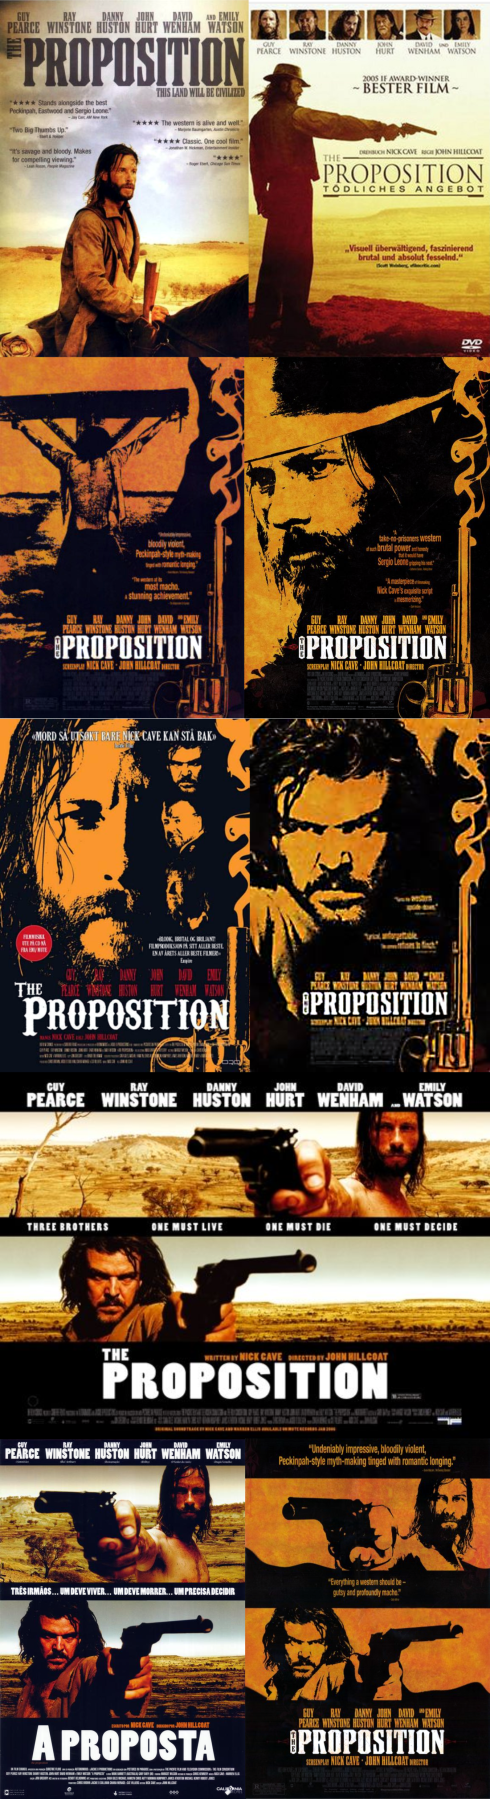 THE PROPOSTION posters